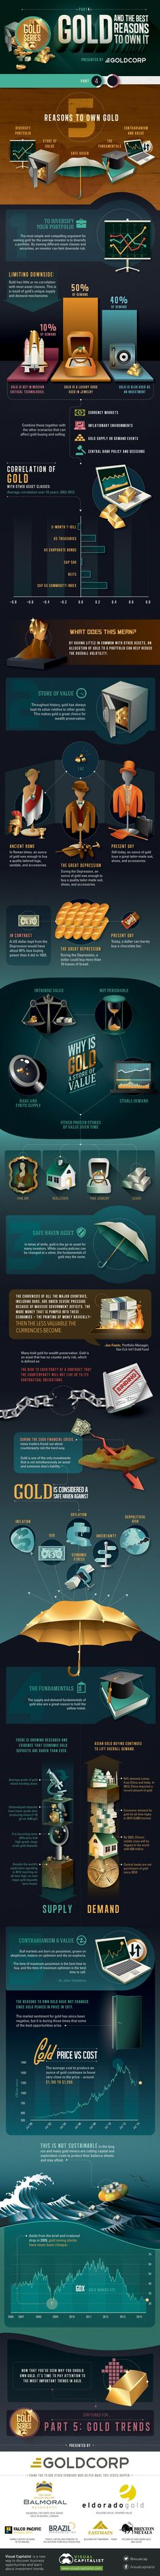 Five Reasons To Own Gold - presented by Goldcorp part 4/5 of GoldCorps' series by Visual Caplitalist